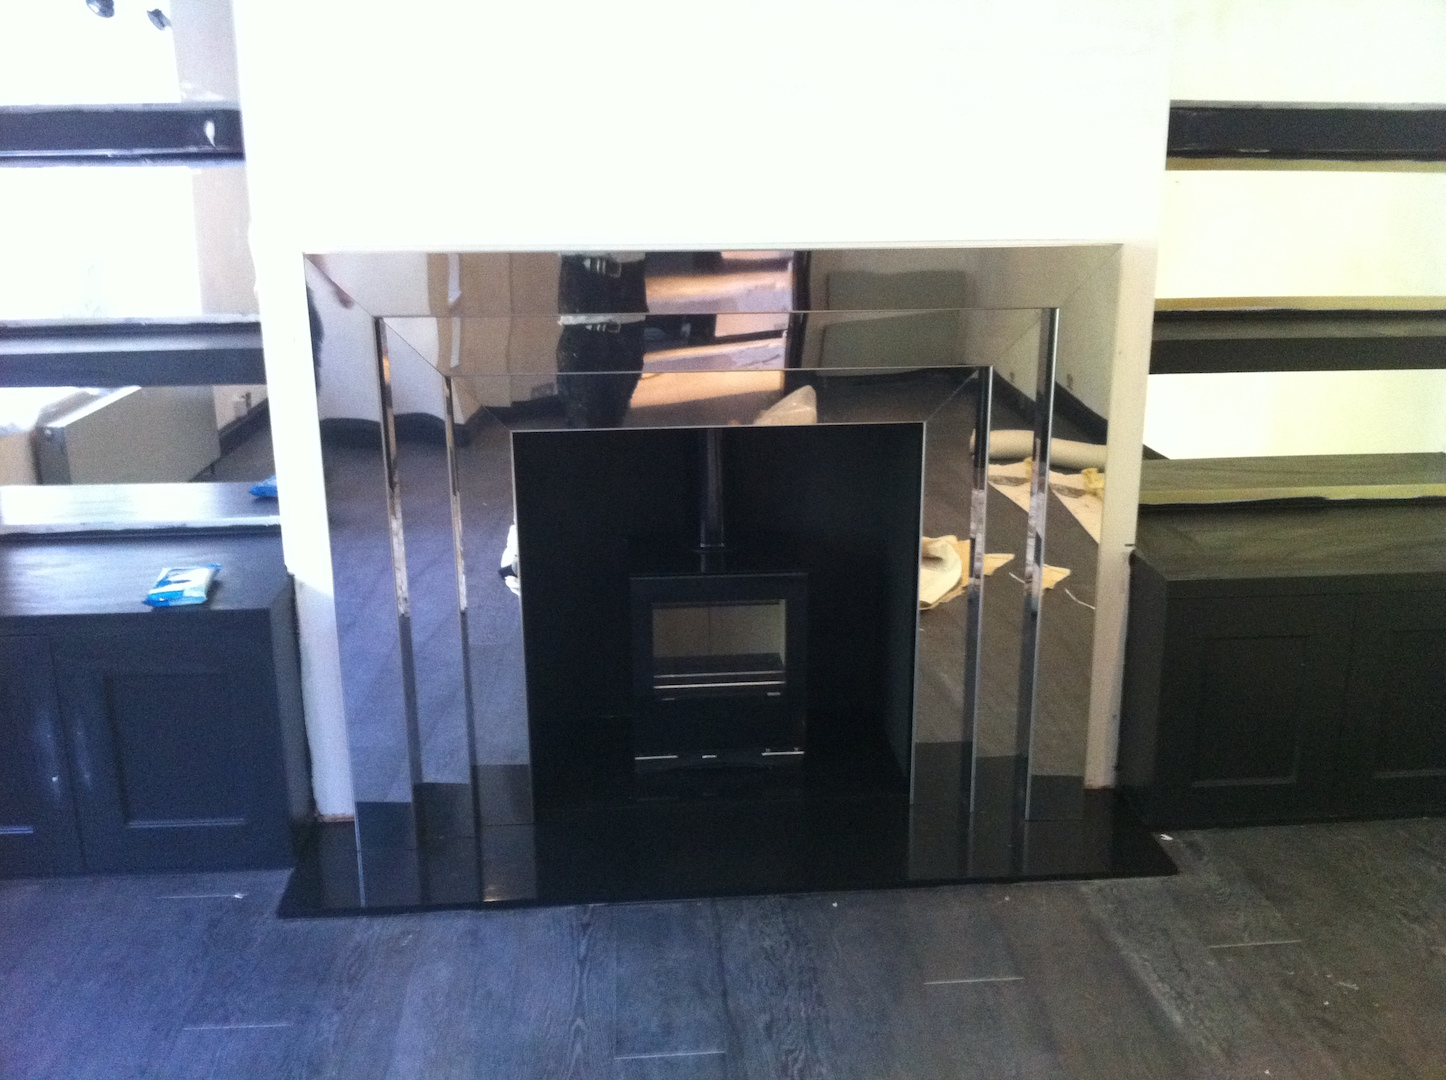 Highly polished Stainless Steel fire surround